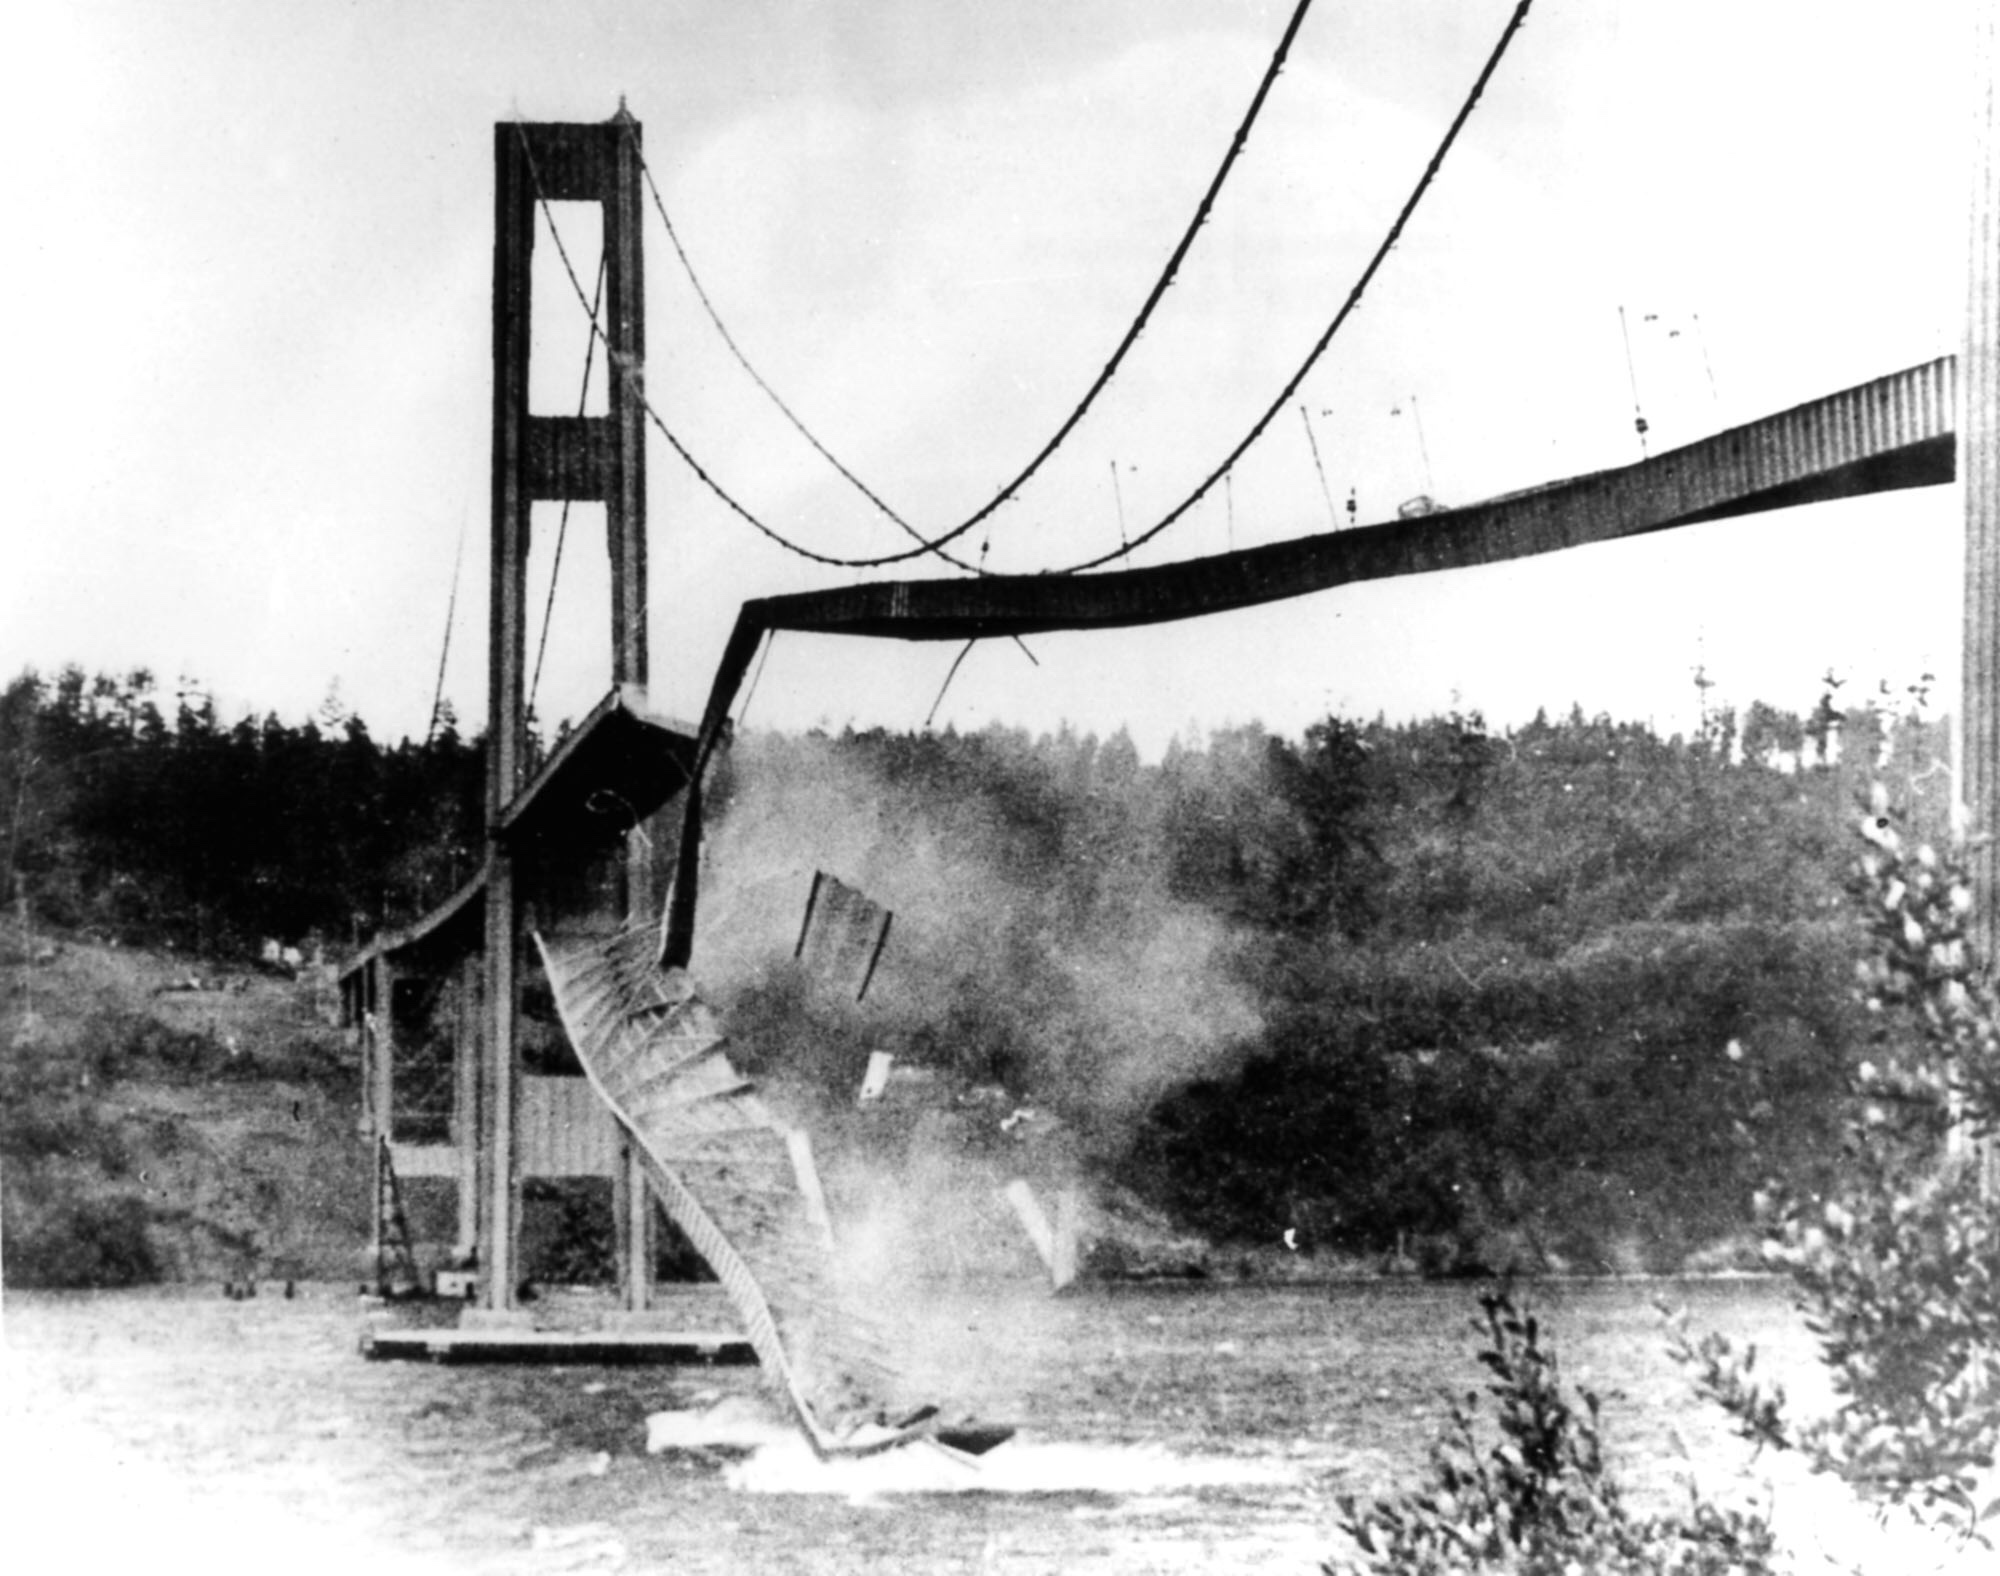 Tacoma Narrows Bridge: the most popular non-fatal engineering disaster in U.S. history~